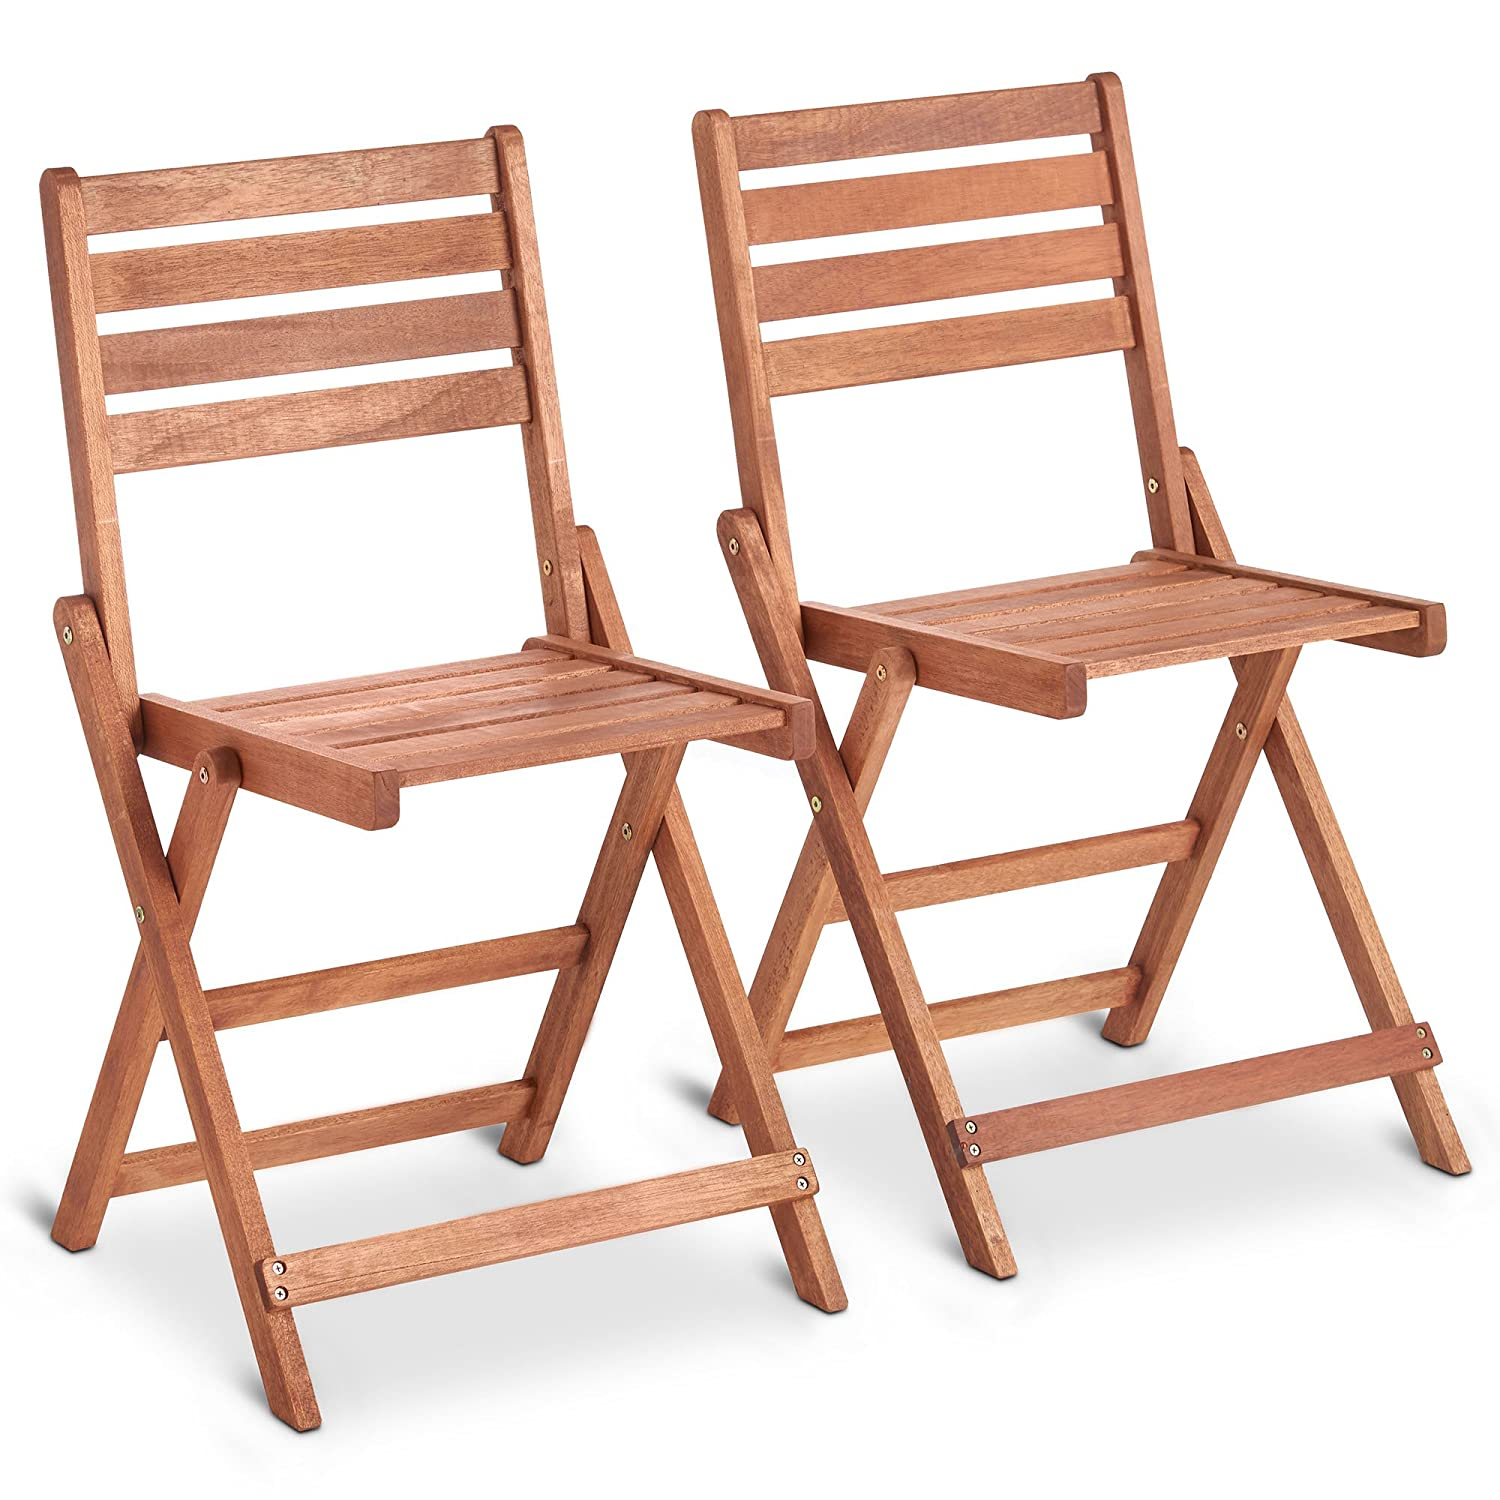 VonHaus Set of 2 Garden Chairs 2 Pack of Wooden Folding Chairs